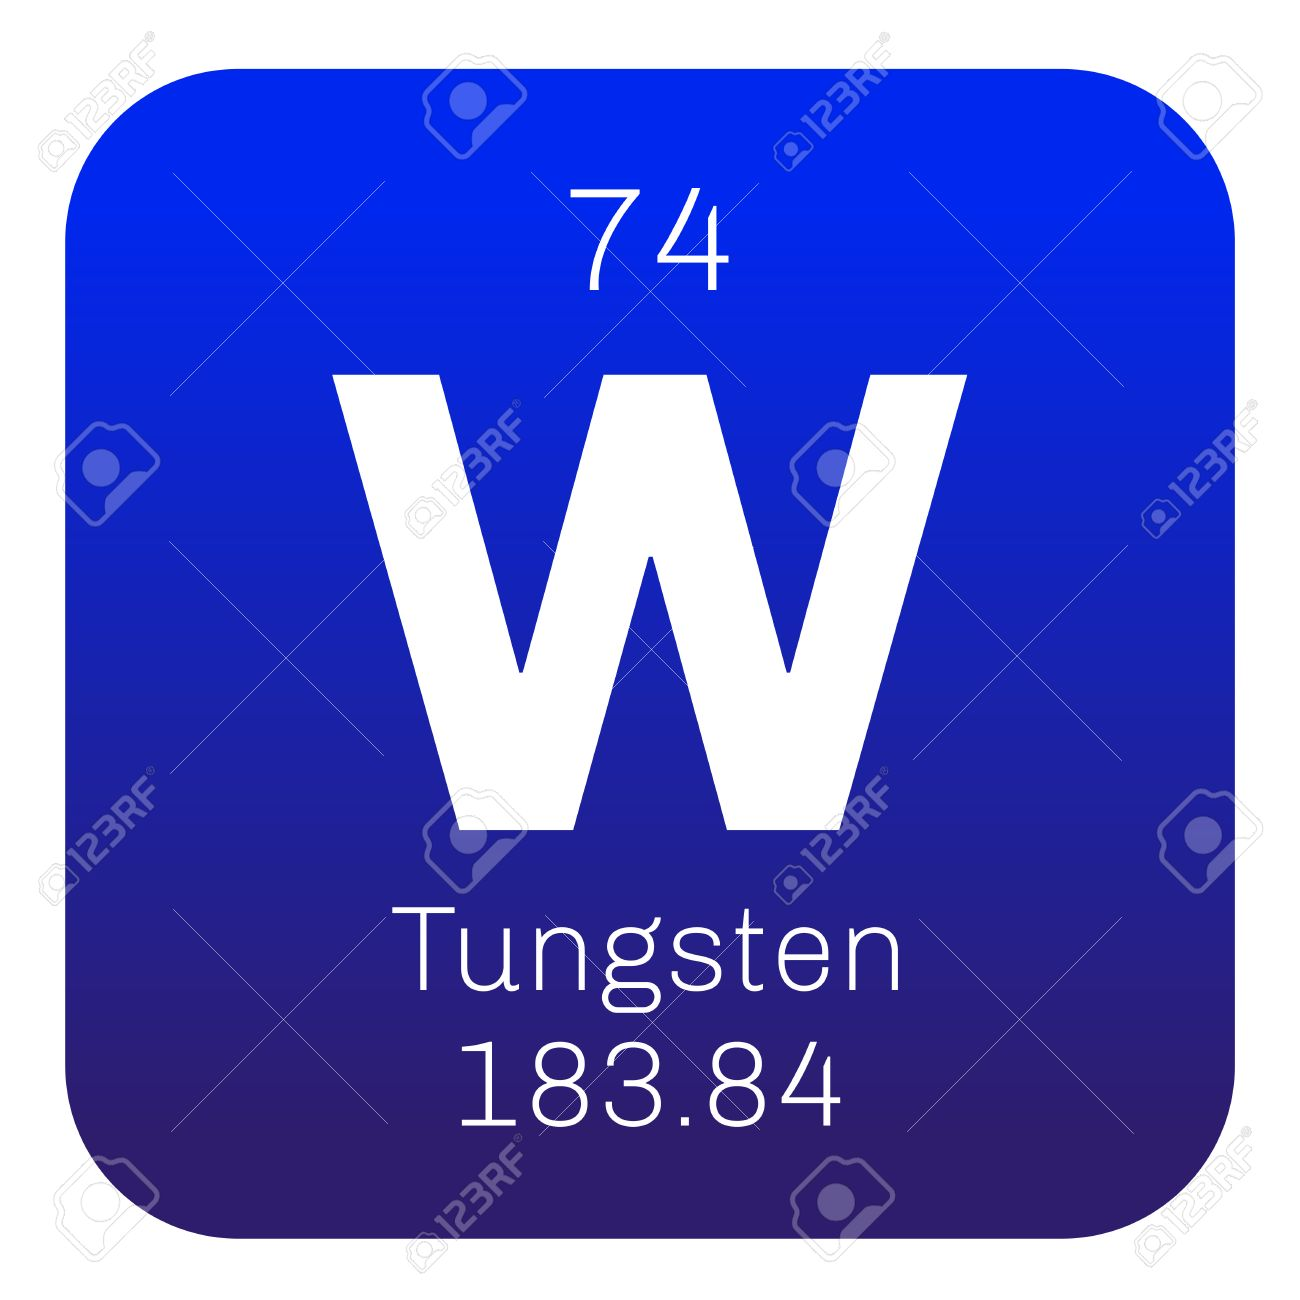 Tungsten chemical element also known as wolfram colored icon tungsten chemical element also known as wolfram colored icon with atomic number and atomic urtaz Choice Image